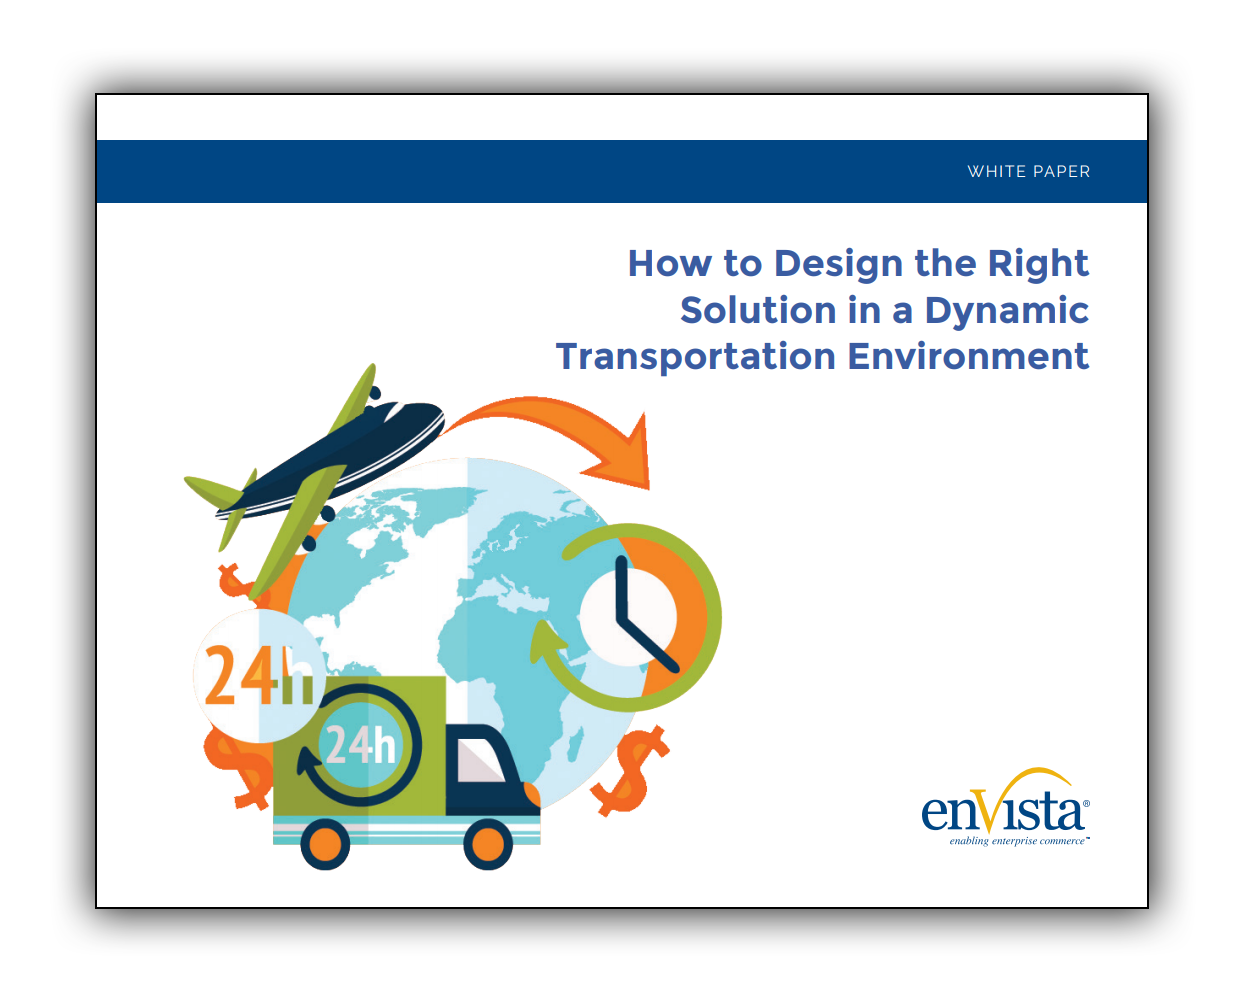 Image_How-to-Design-the-Right-Solution-in-a-Dynamic-Transportation-Environment.png